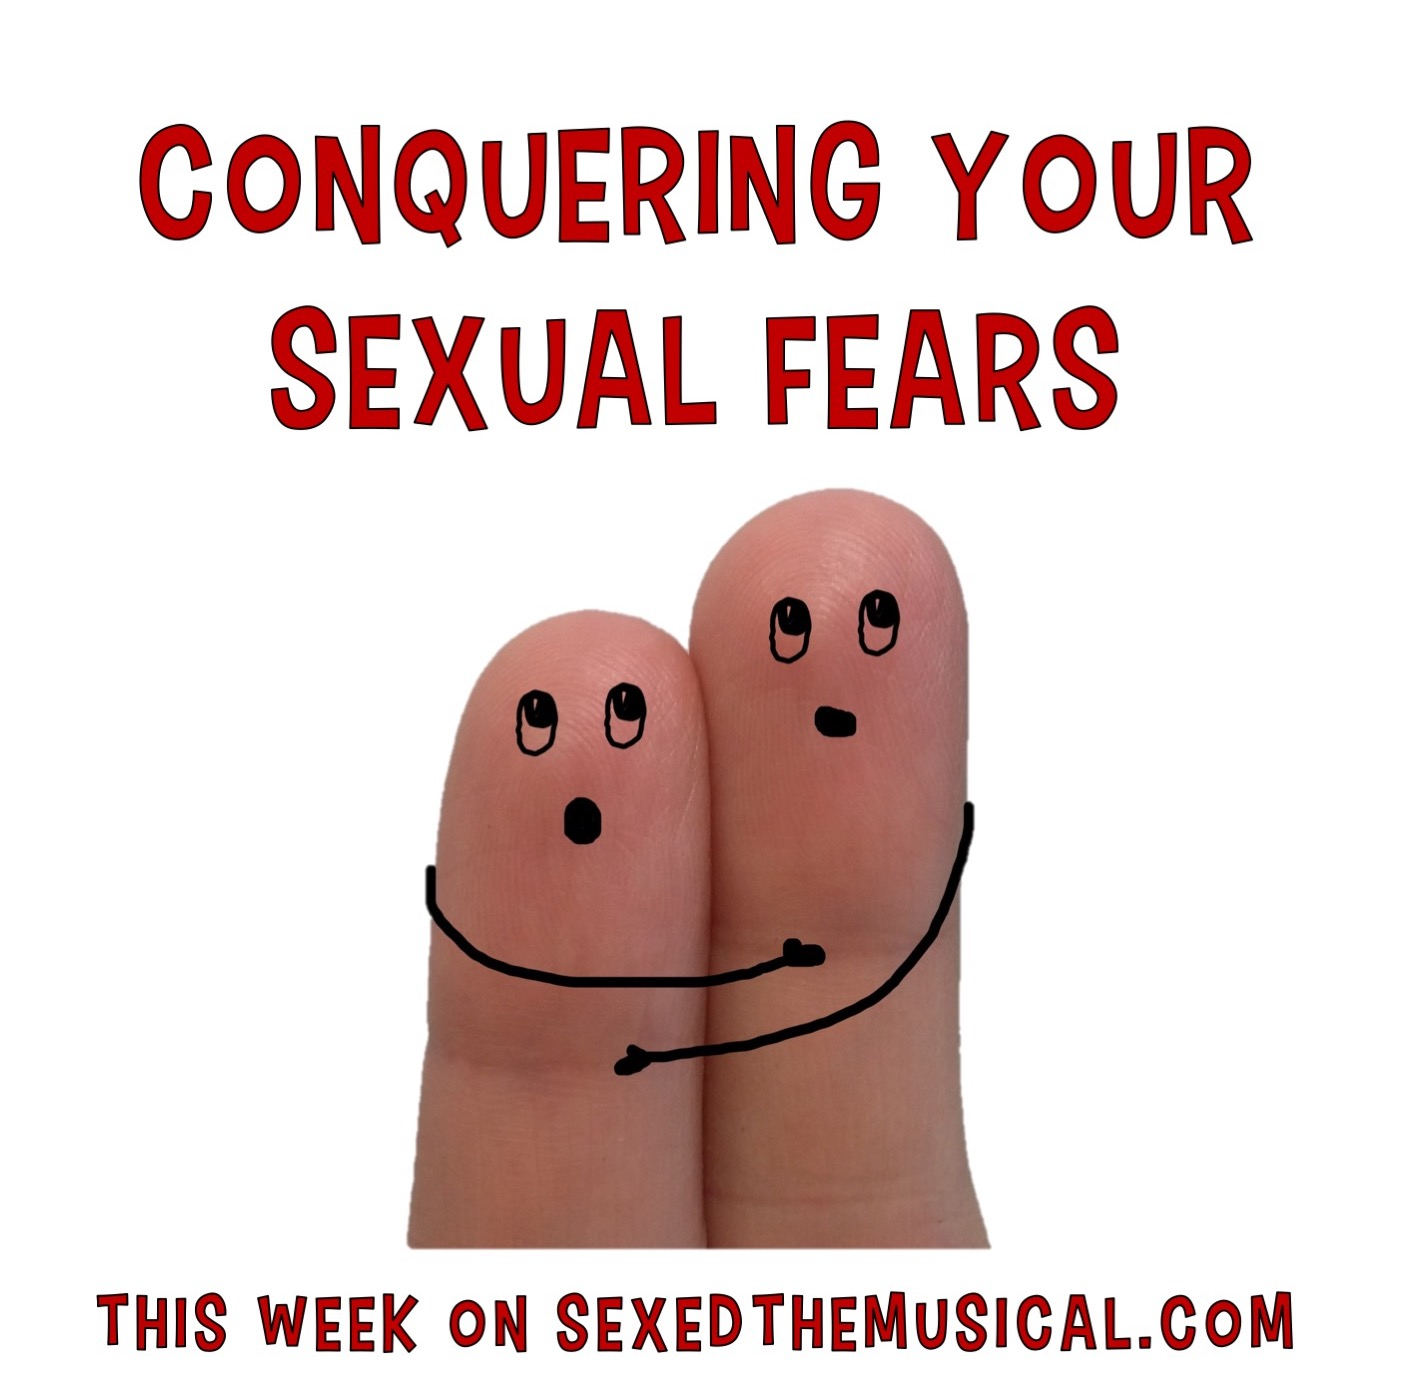 CONQUERING YOUR SEXUAL FEARS